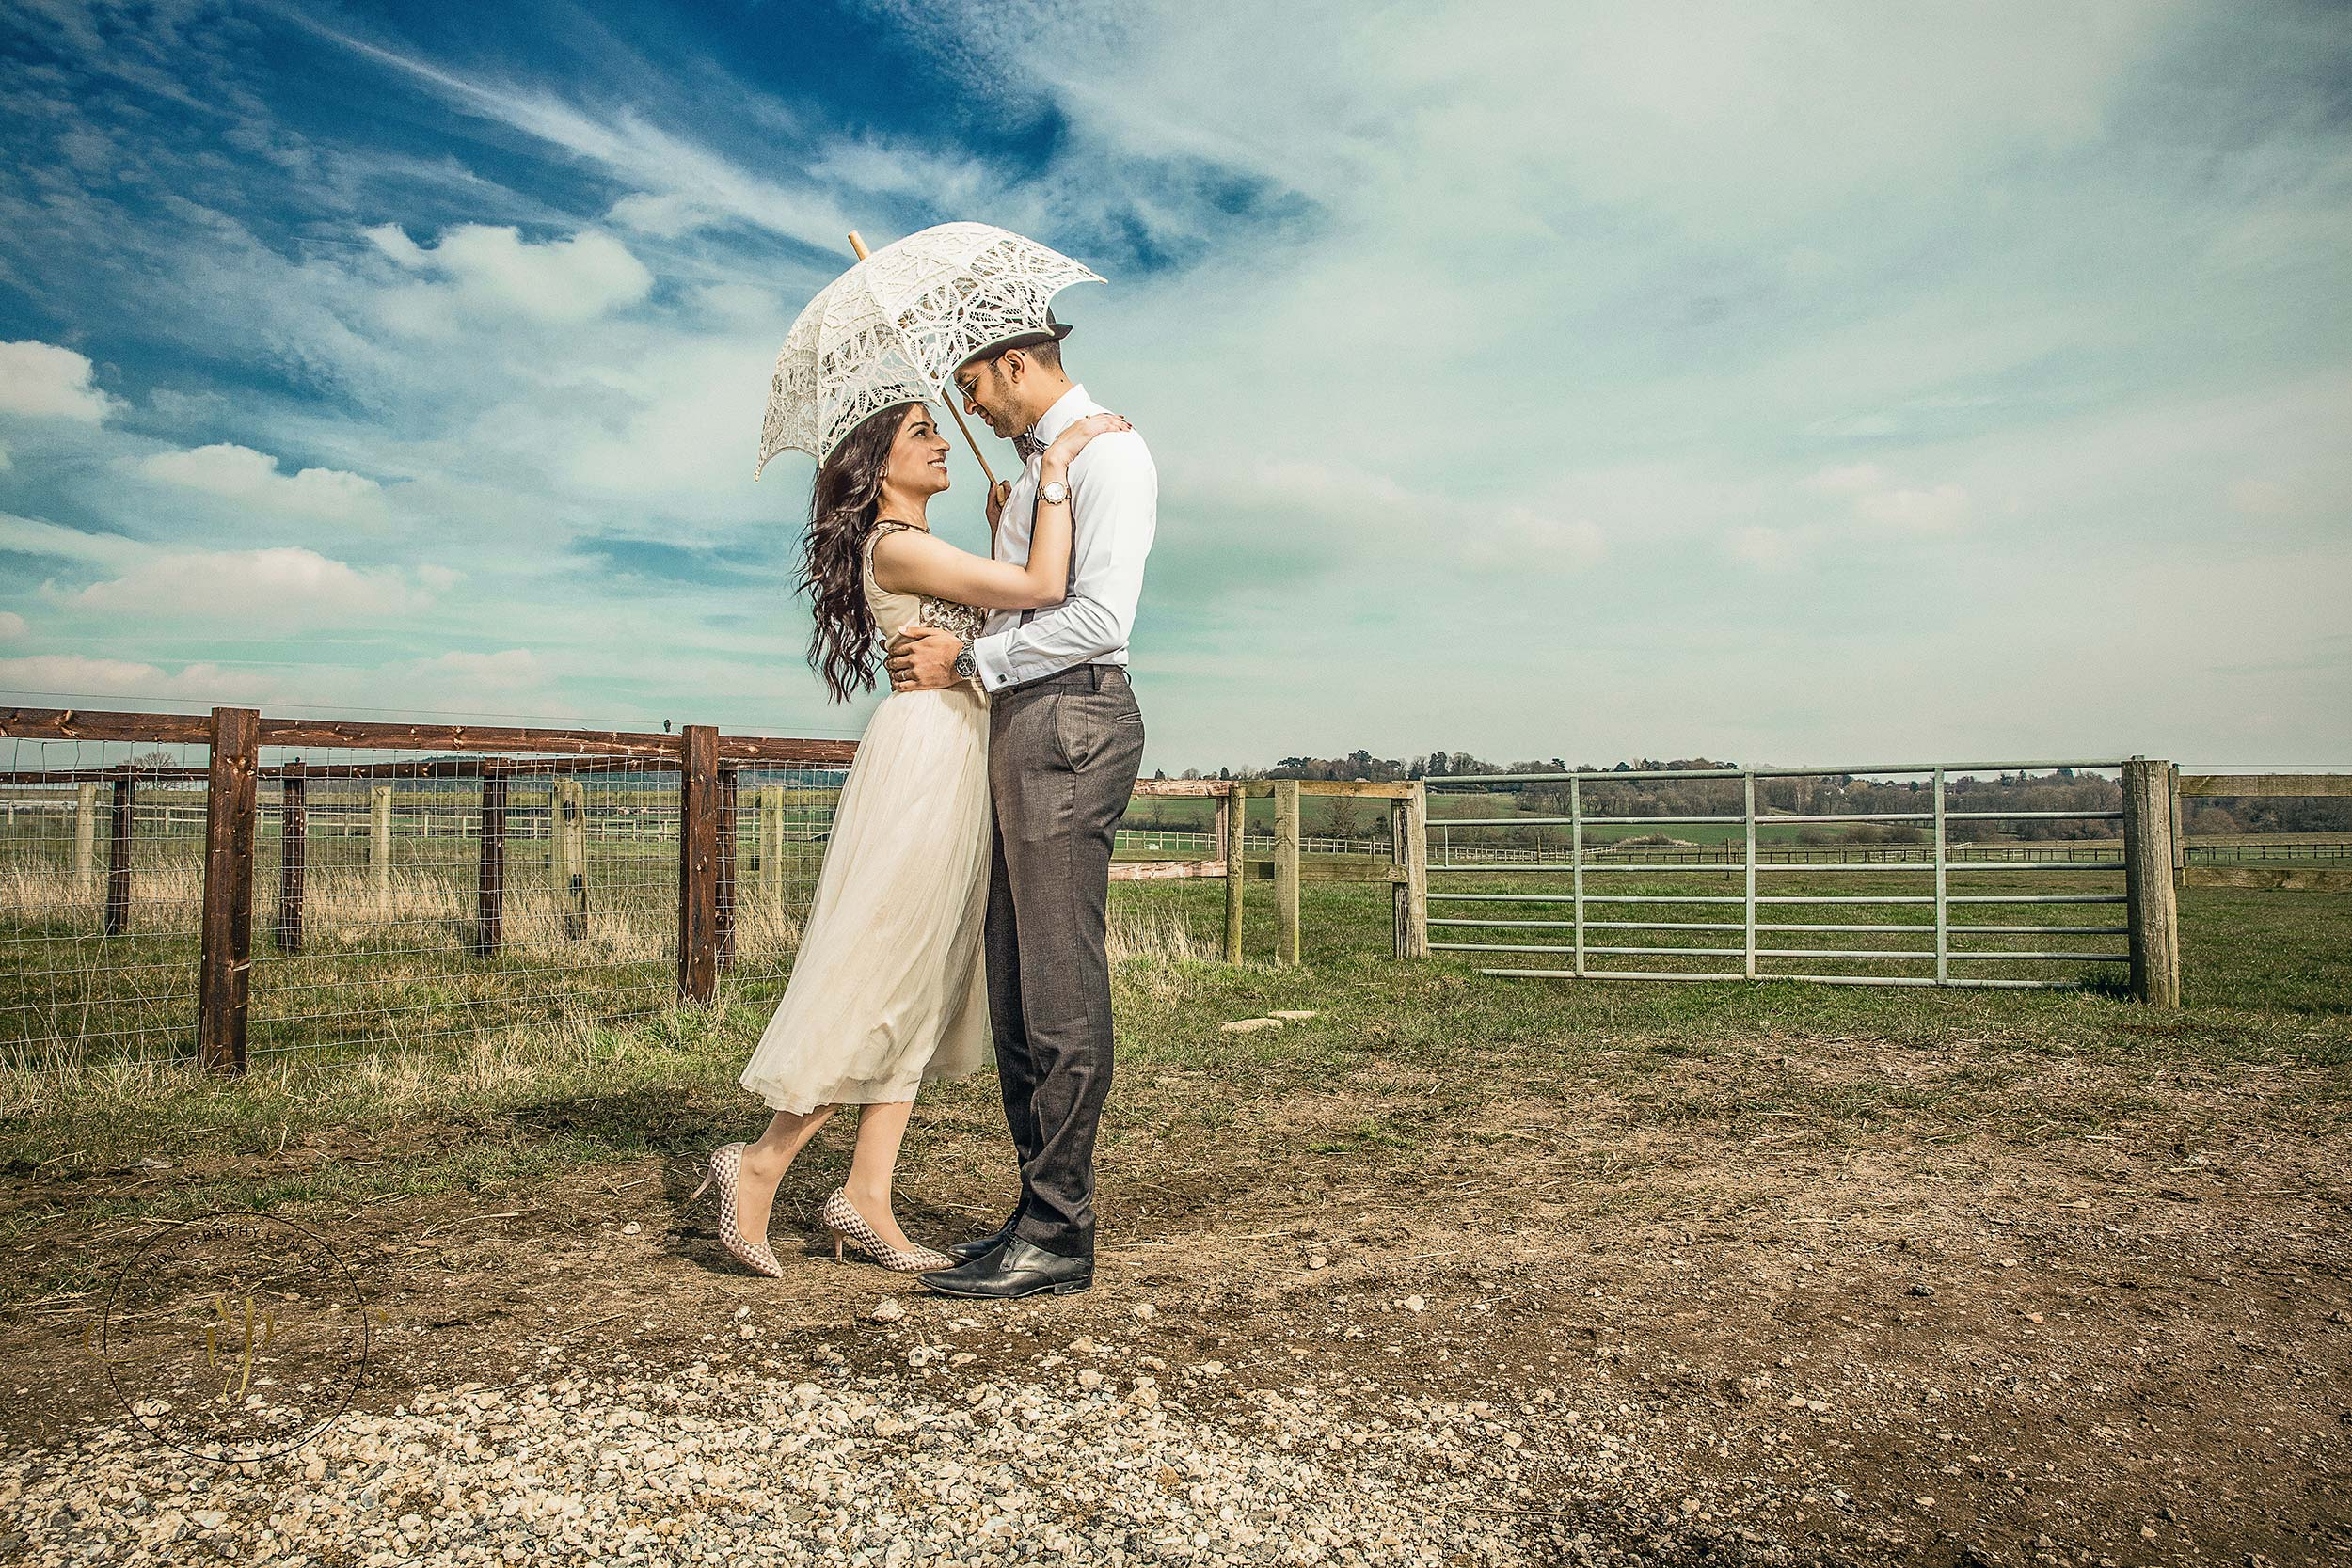 pre+wedding+photography+london+69.jpg